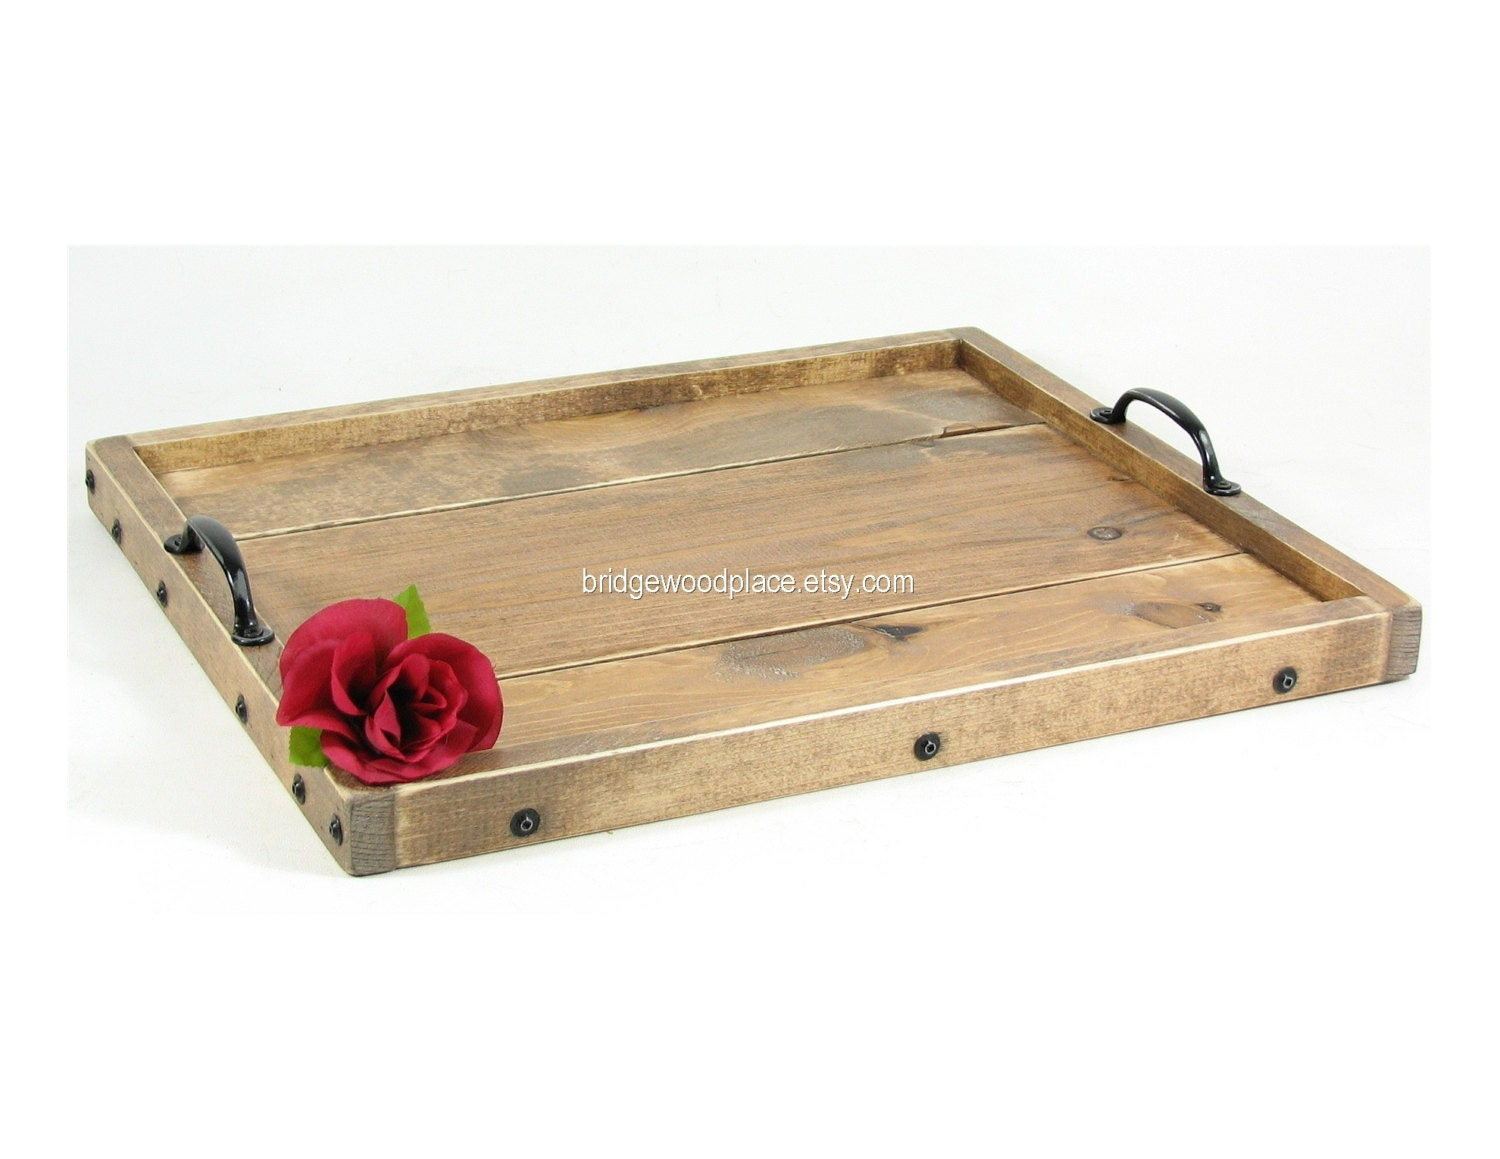 Ottoman tray wooden coffee table tray by bridgewoodplace on etsy Ottoman coffee table trays